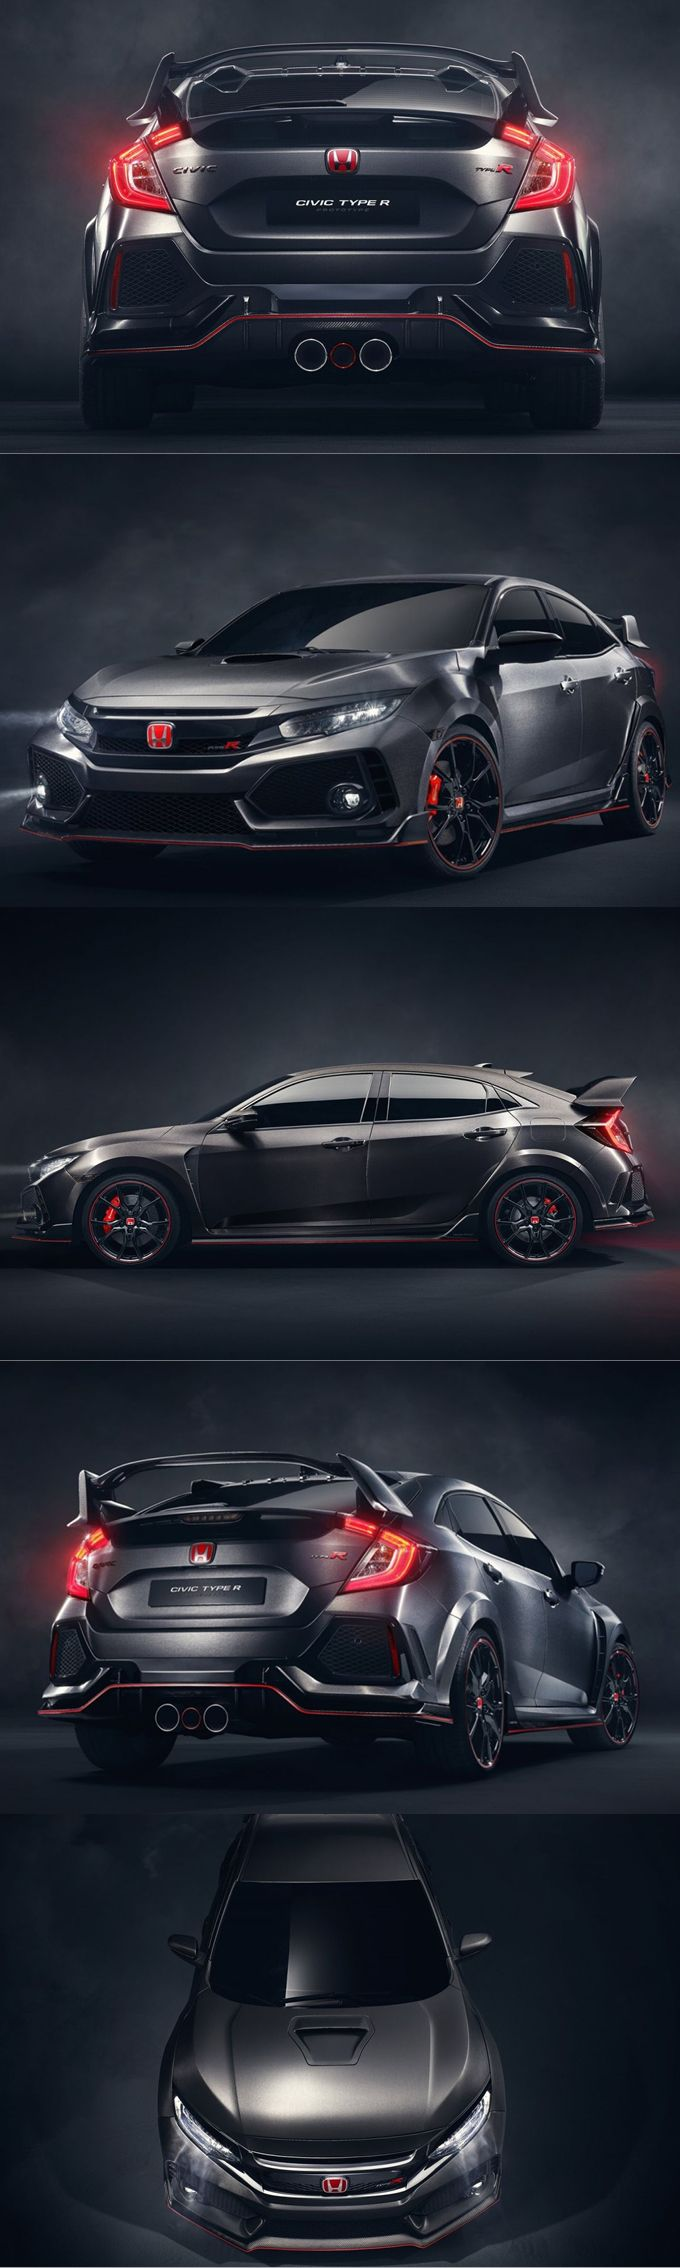 2016 Honda Civic Type R Concept / Japan / grey red / hot hatch / 16-133